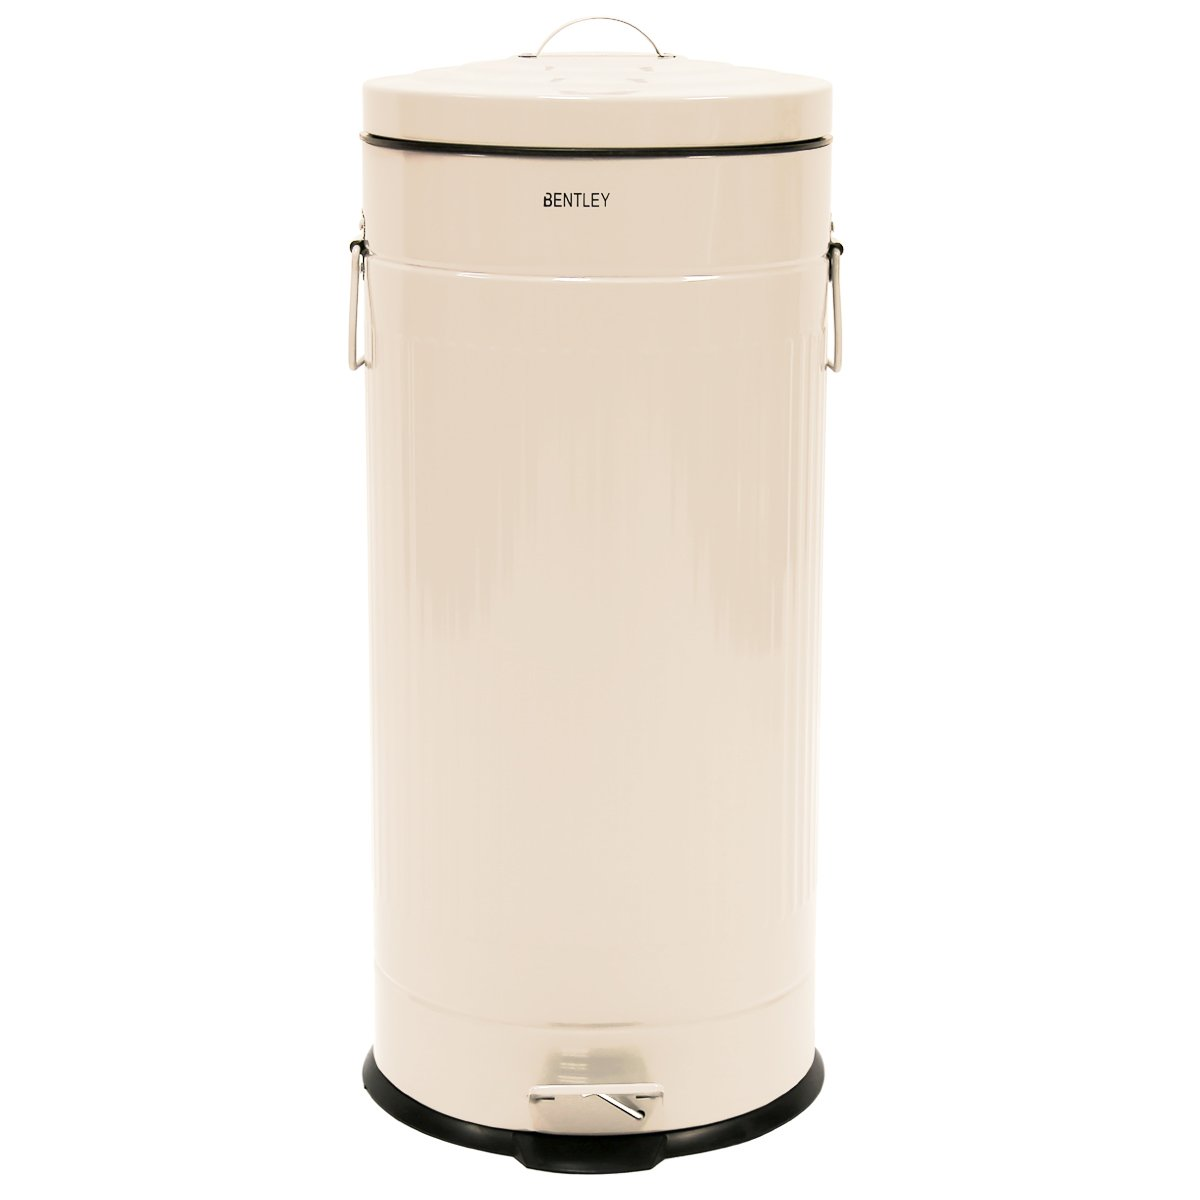 30L RETRO STEEL ENAMELLED WASTE RUBBISH KITCHEN PEDAL BIN   CREAM:  Amazon.co.uk: Kitchen U0026 Home